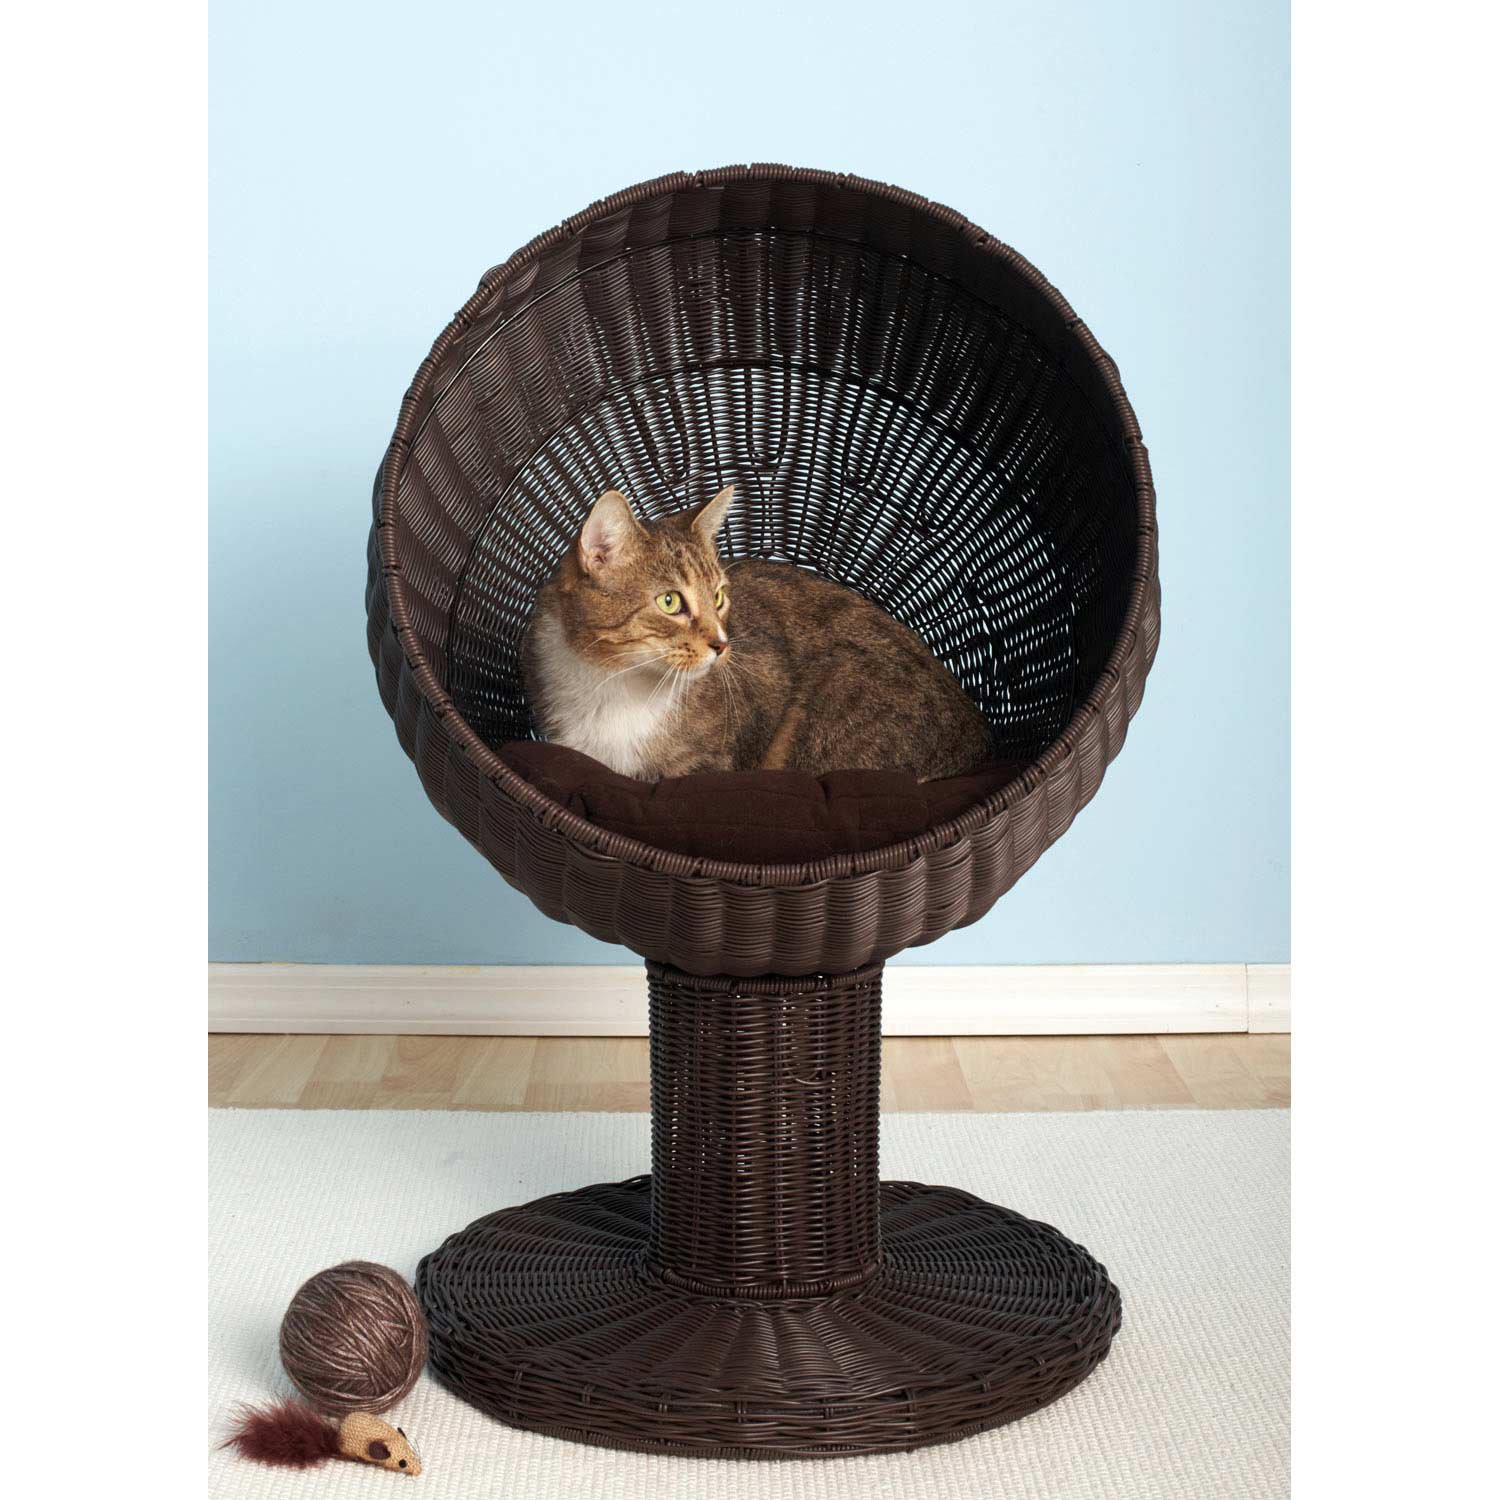 The Refined Feline Kitty Ball Bed in Espresso